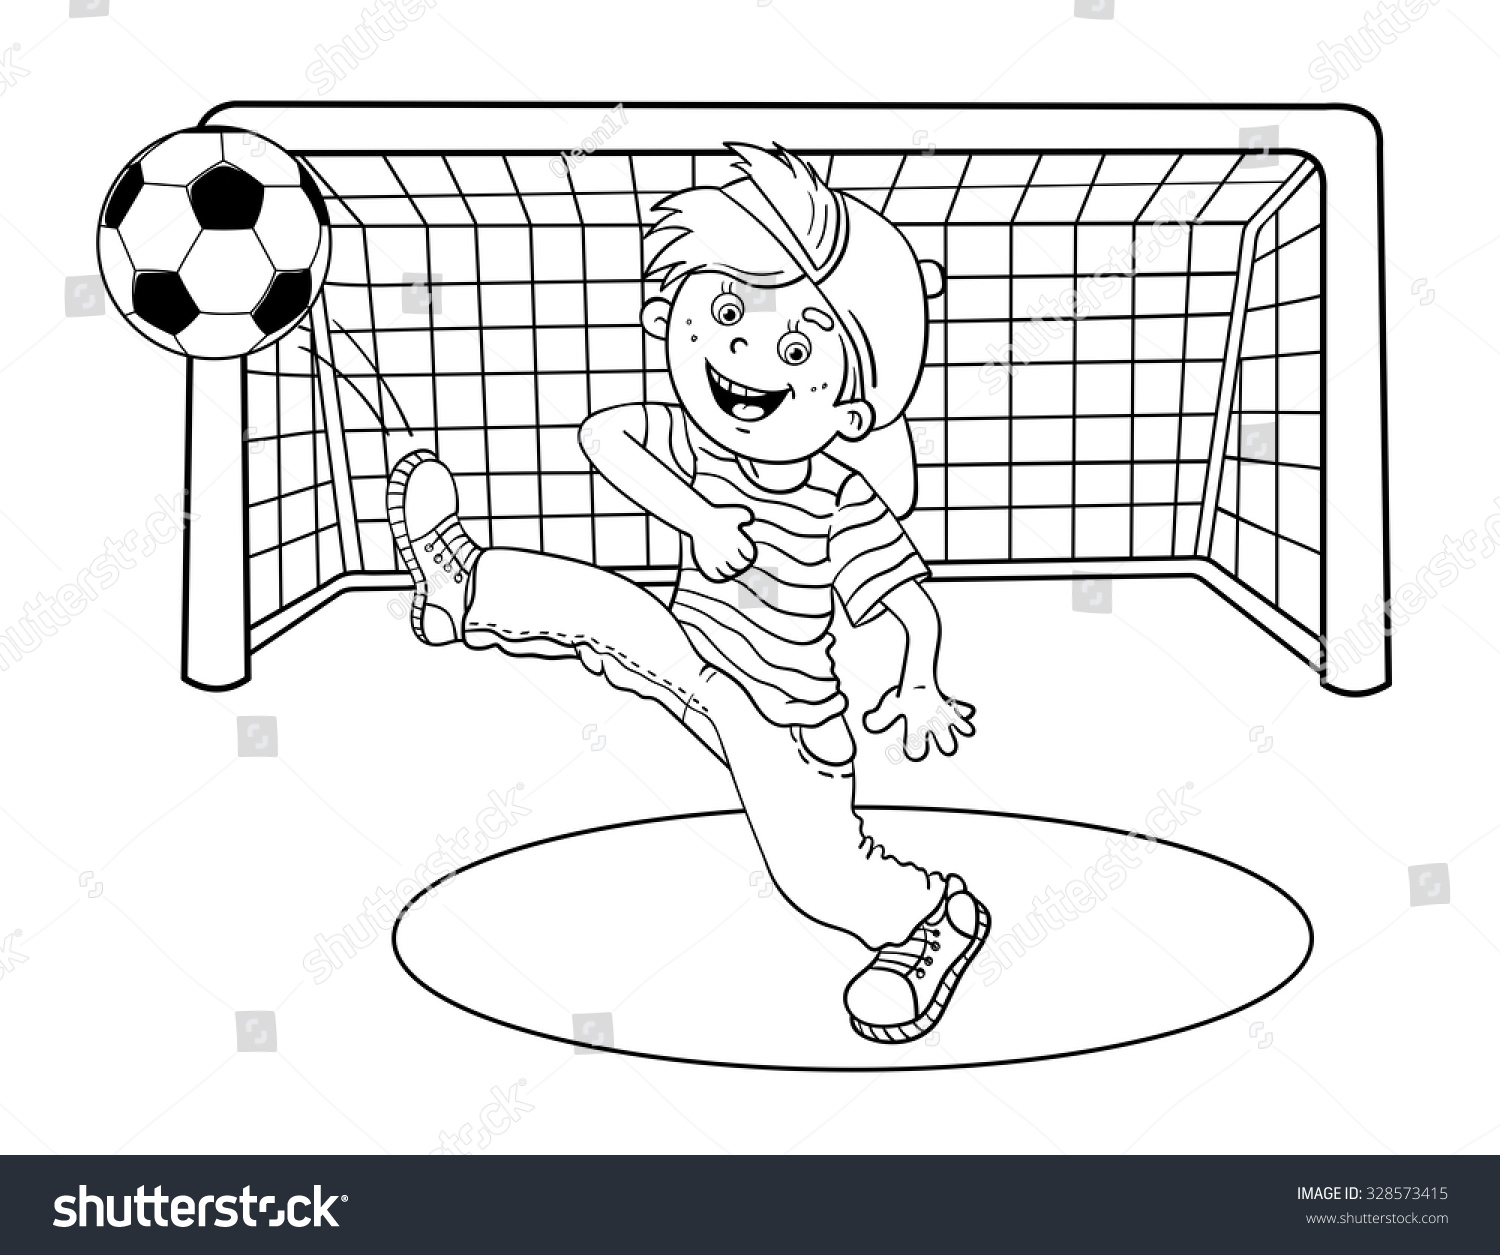 Coloring Page Outline Cartoon Boy Kicking Stock Vector (2018 ...